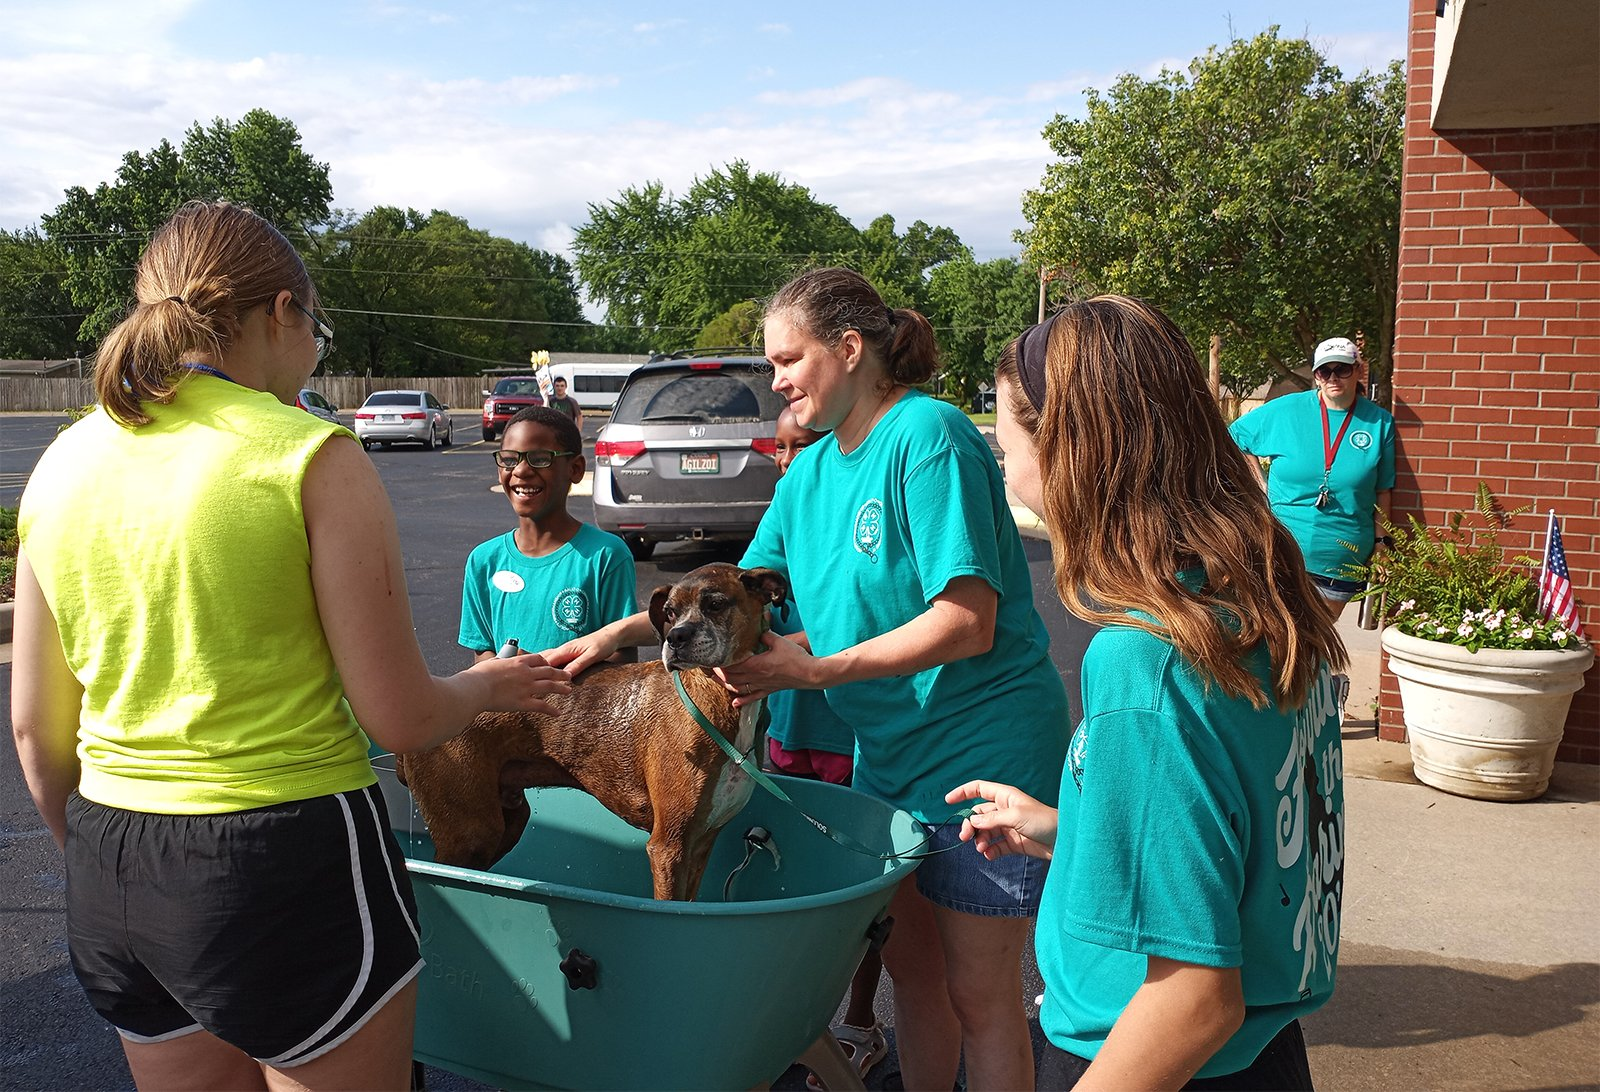 The Sedgwick County 4H Team washes a dog during an Operation Saint Francis event at Woodlawn UMC in Derby, Kasas, Satuday, June 26, 2021. Photo courtesy of Carla Stroot